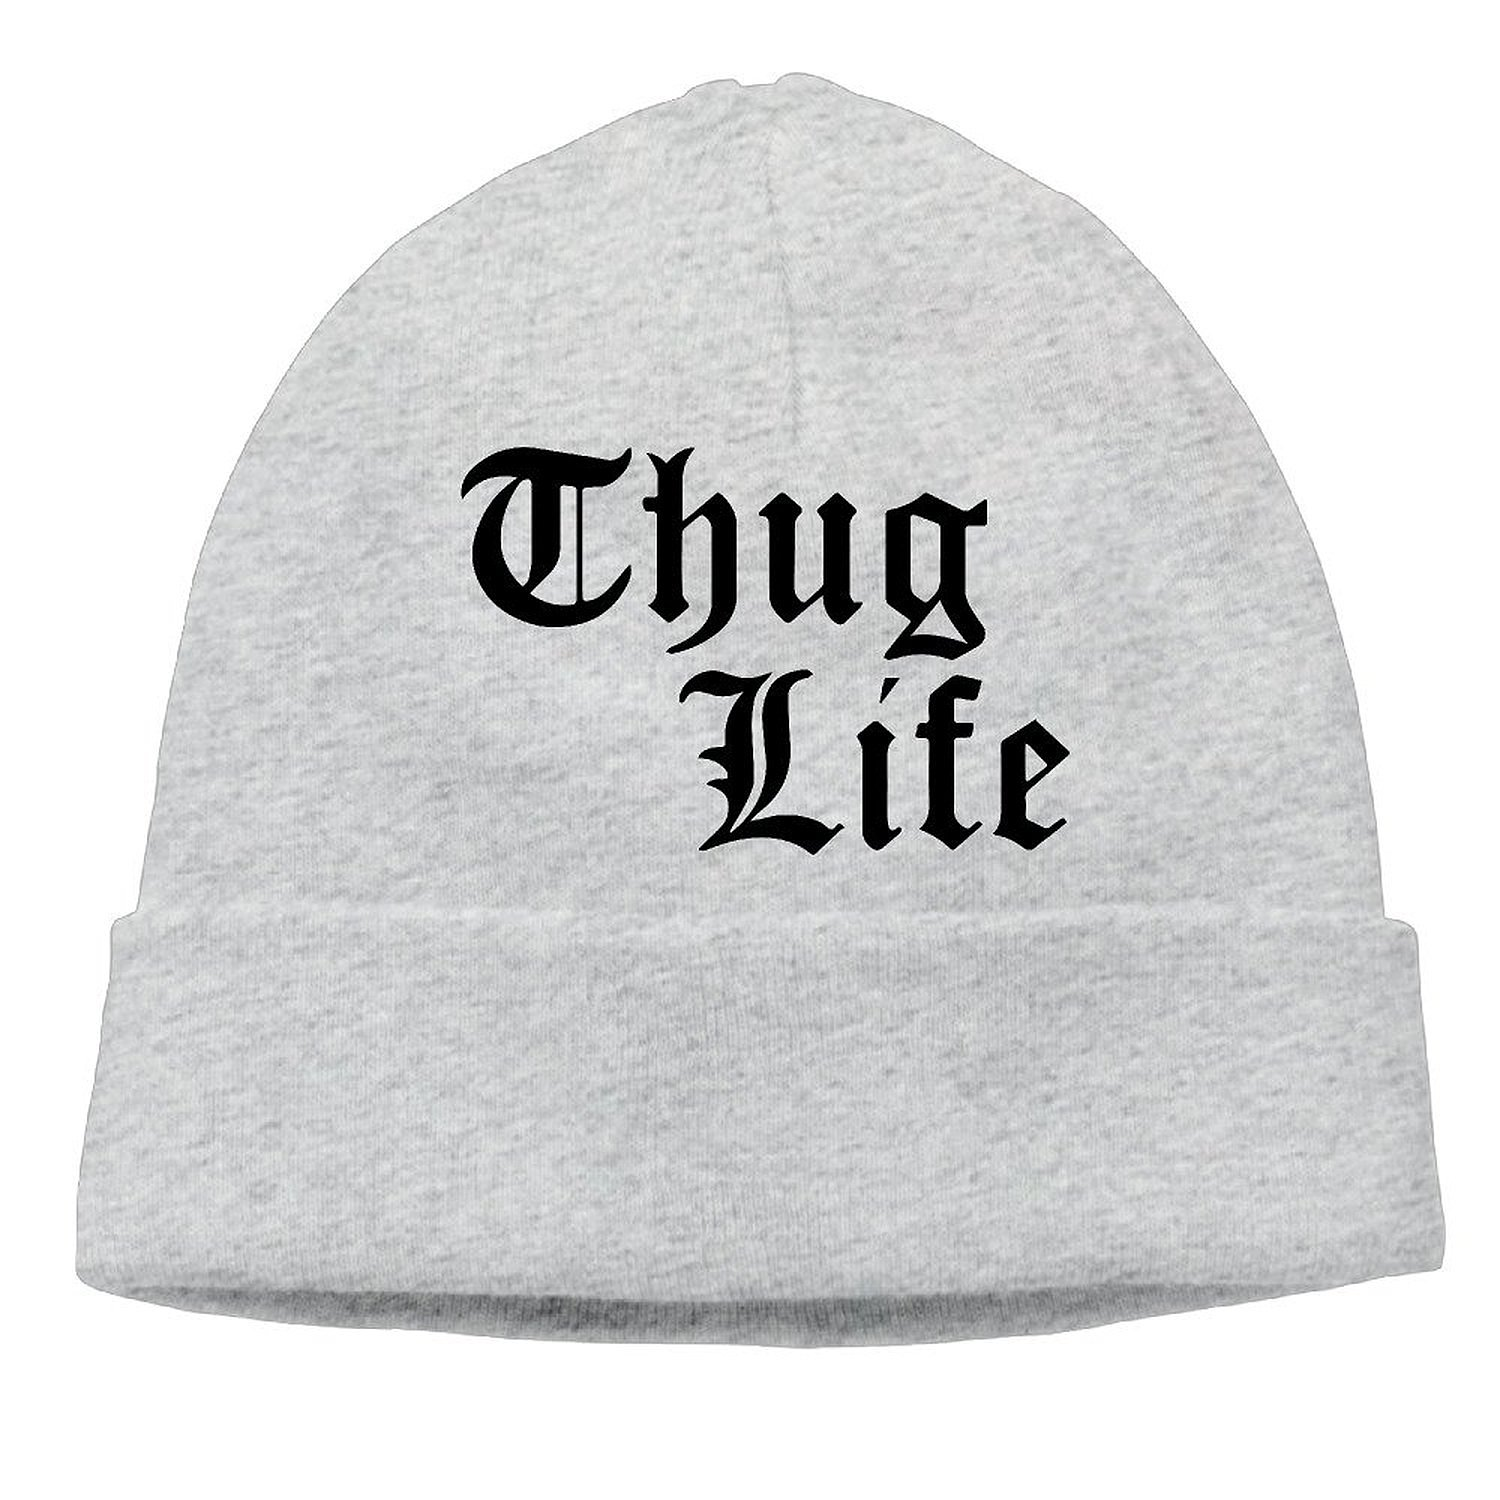 64878d9099f2f5 Cheap Thug Life Beanie, find Thug Life Beanie deals on line at ...